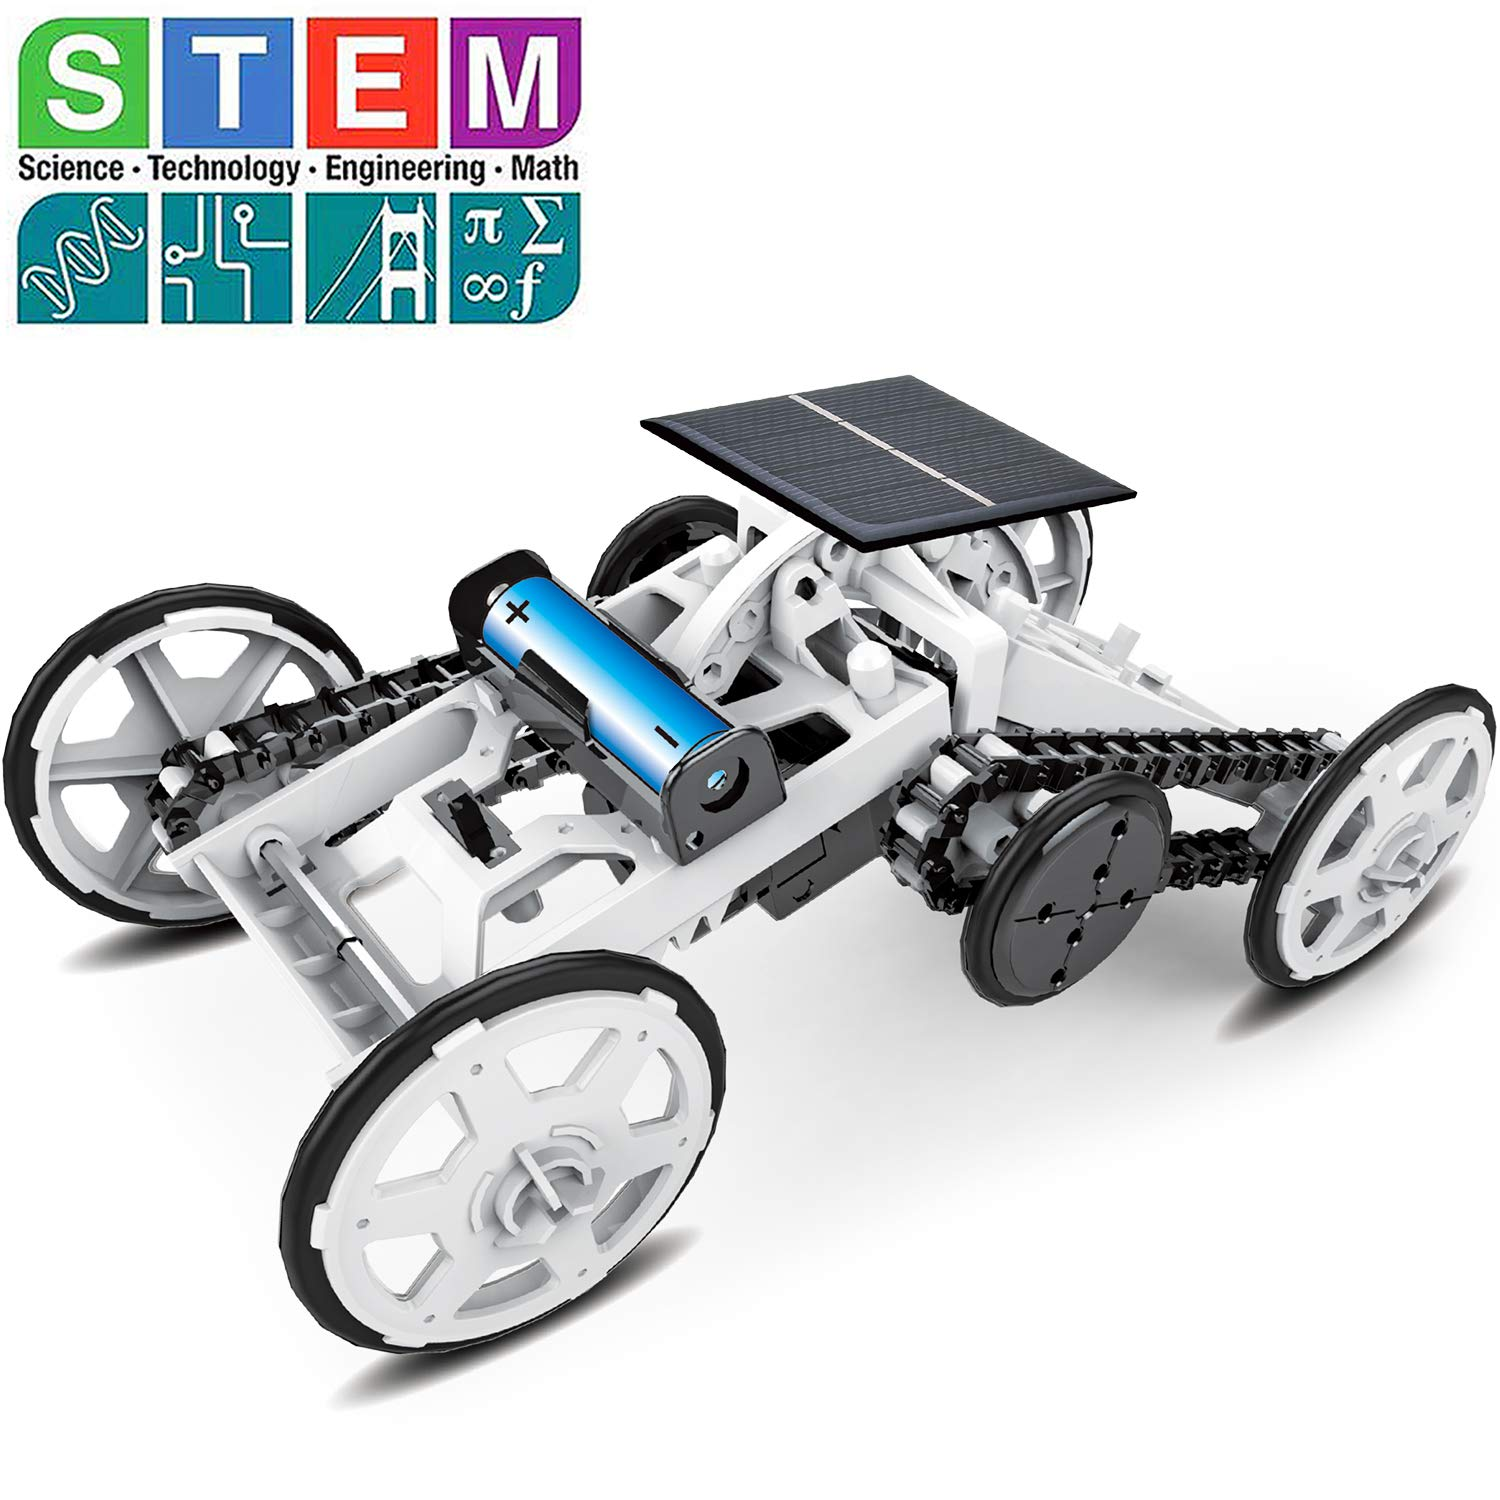 Sillbird STEM 4WD Car DIY Climbing Vehicle Kit Electric Mechanical / Solar Power Science Building Toys, Circuits Engineering Gift Toys Car for Kids and Teens. by Sillbird